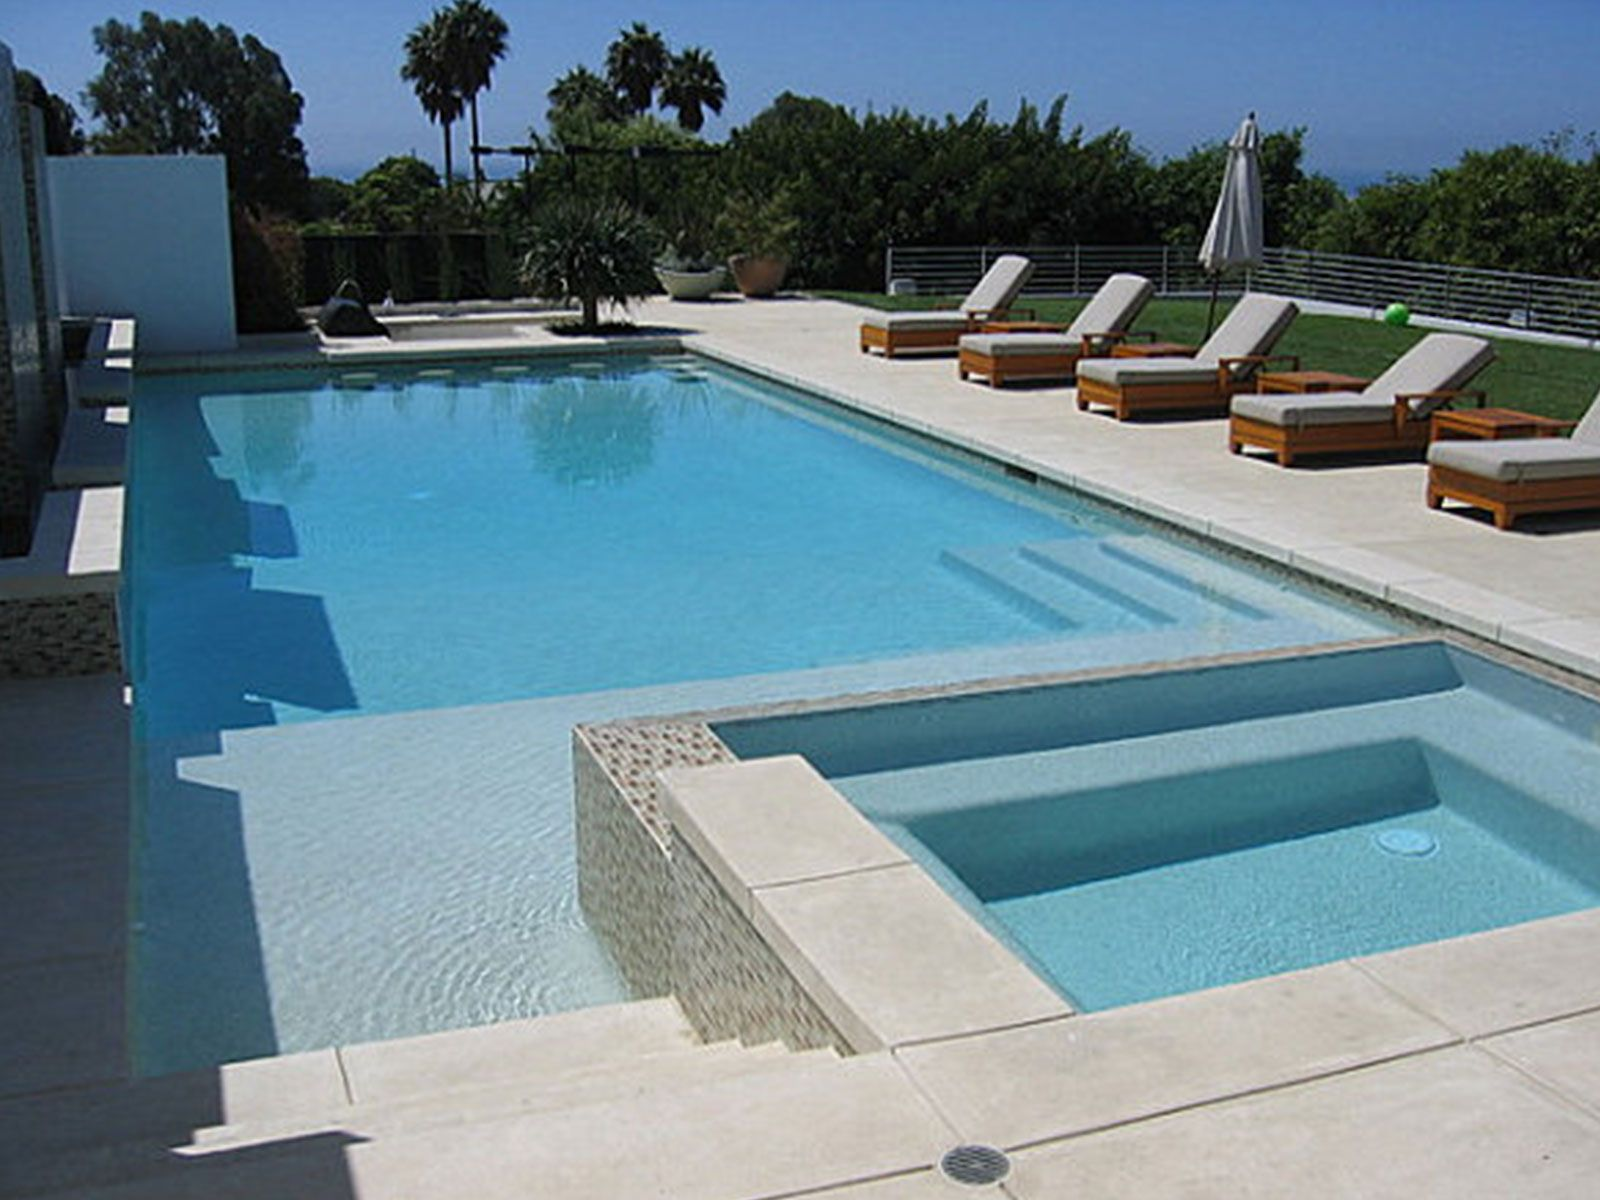 Simple swimming pool design image modern creative swimming for Pool and backyard design